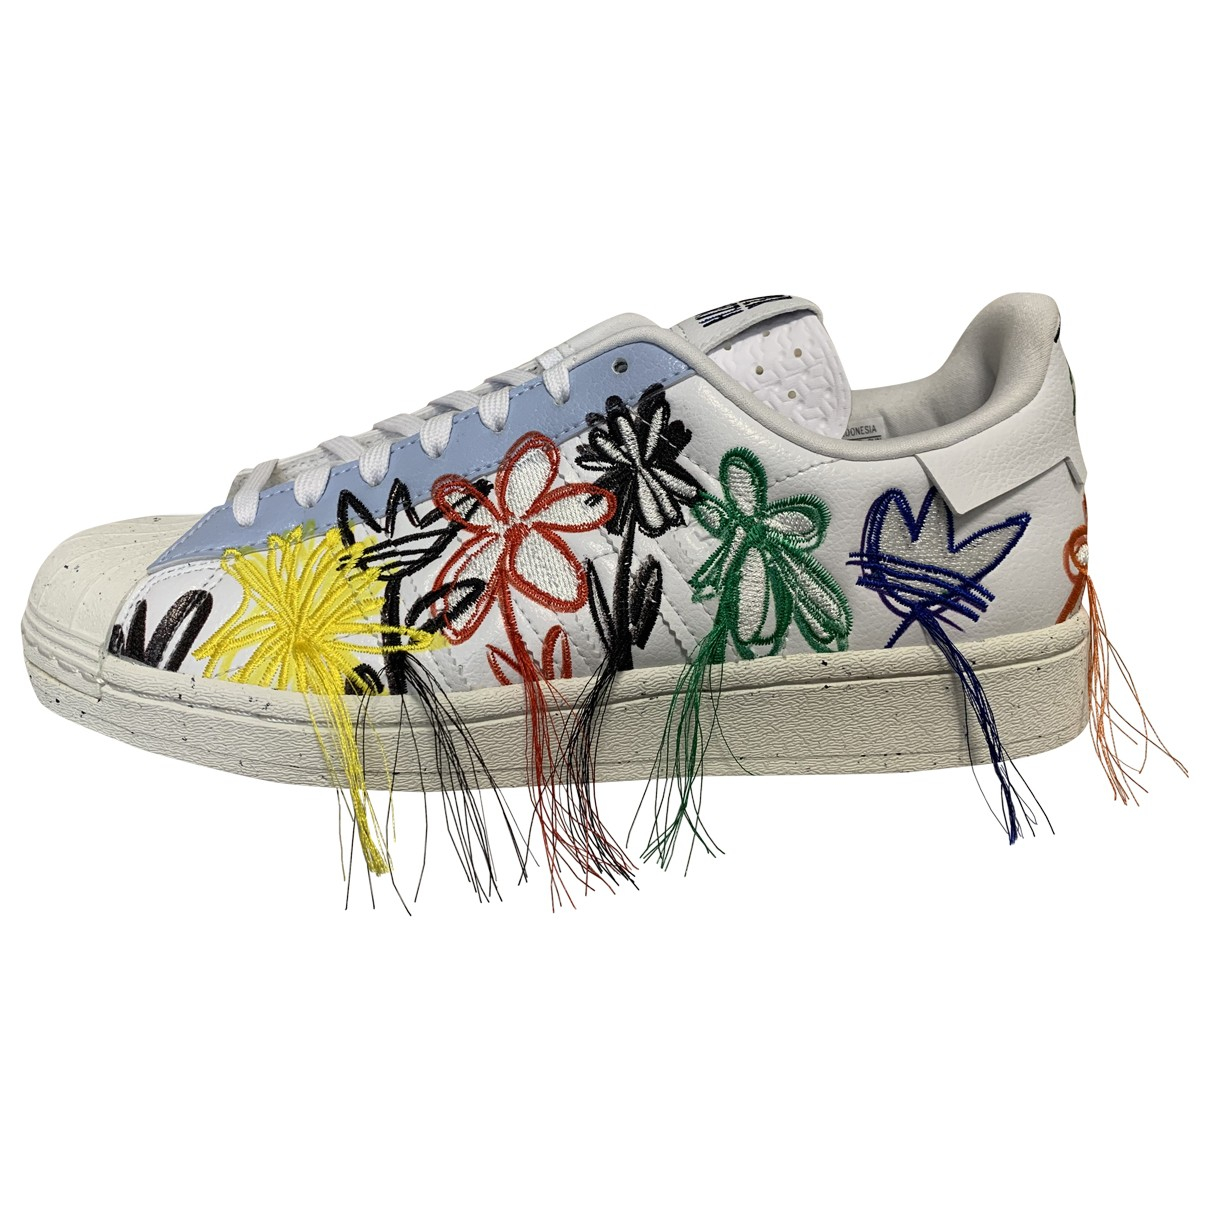 Adidas Superstar Multicolour Leather Trainers for Women 40.5 EU